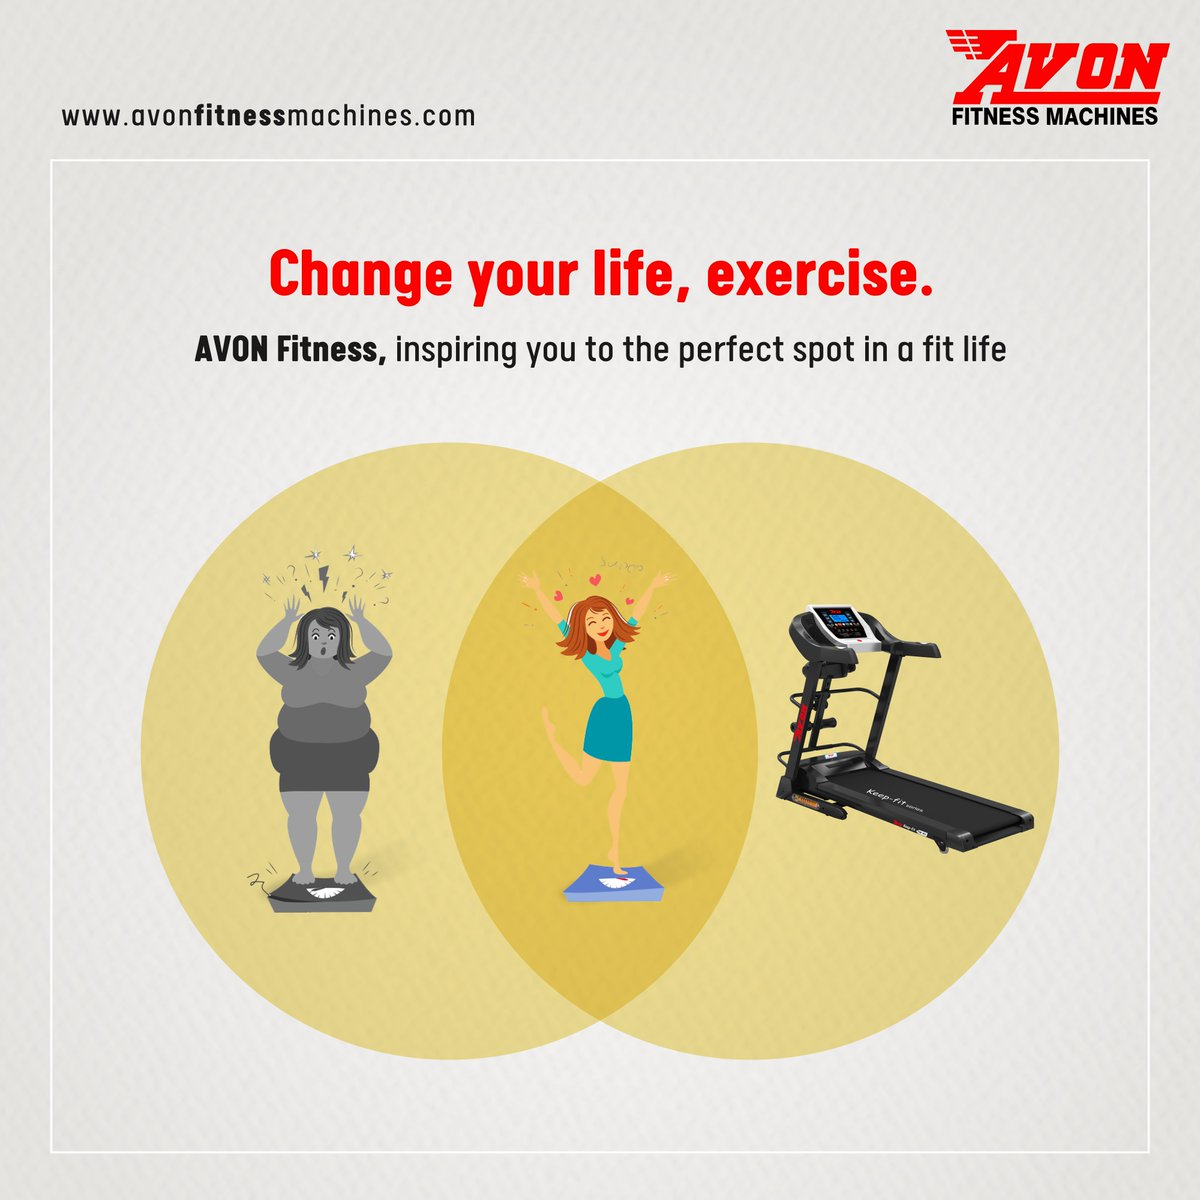 Avon Fitness Machines inspire you to do exercise and change your life. There are countless benefits of exercising regularly. Get fit in your perfect spot with your fitness partner AVON.  #AVON #Fitness #Gym #Workout #FitnessMachines #Treadmill #Cardio #GymEquipment #Health #Diet